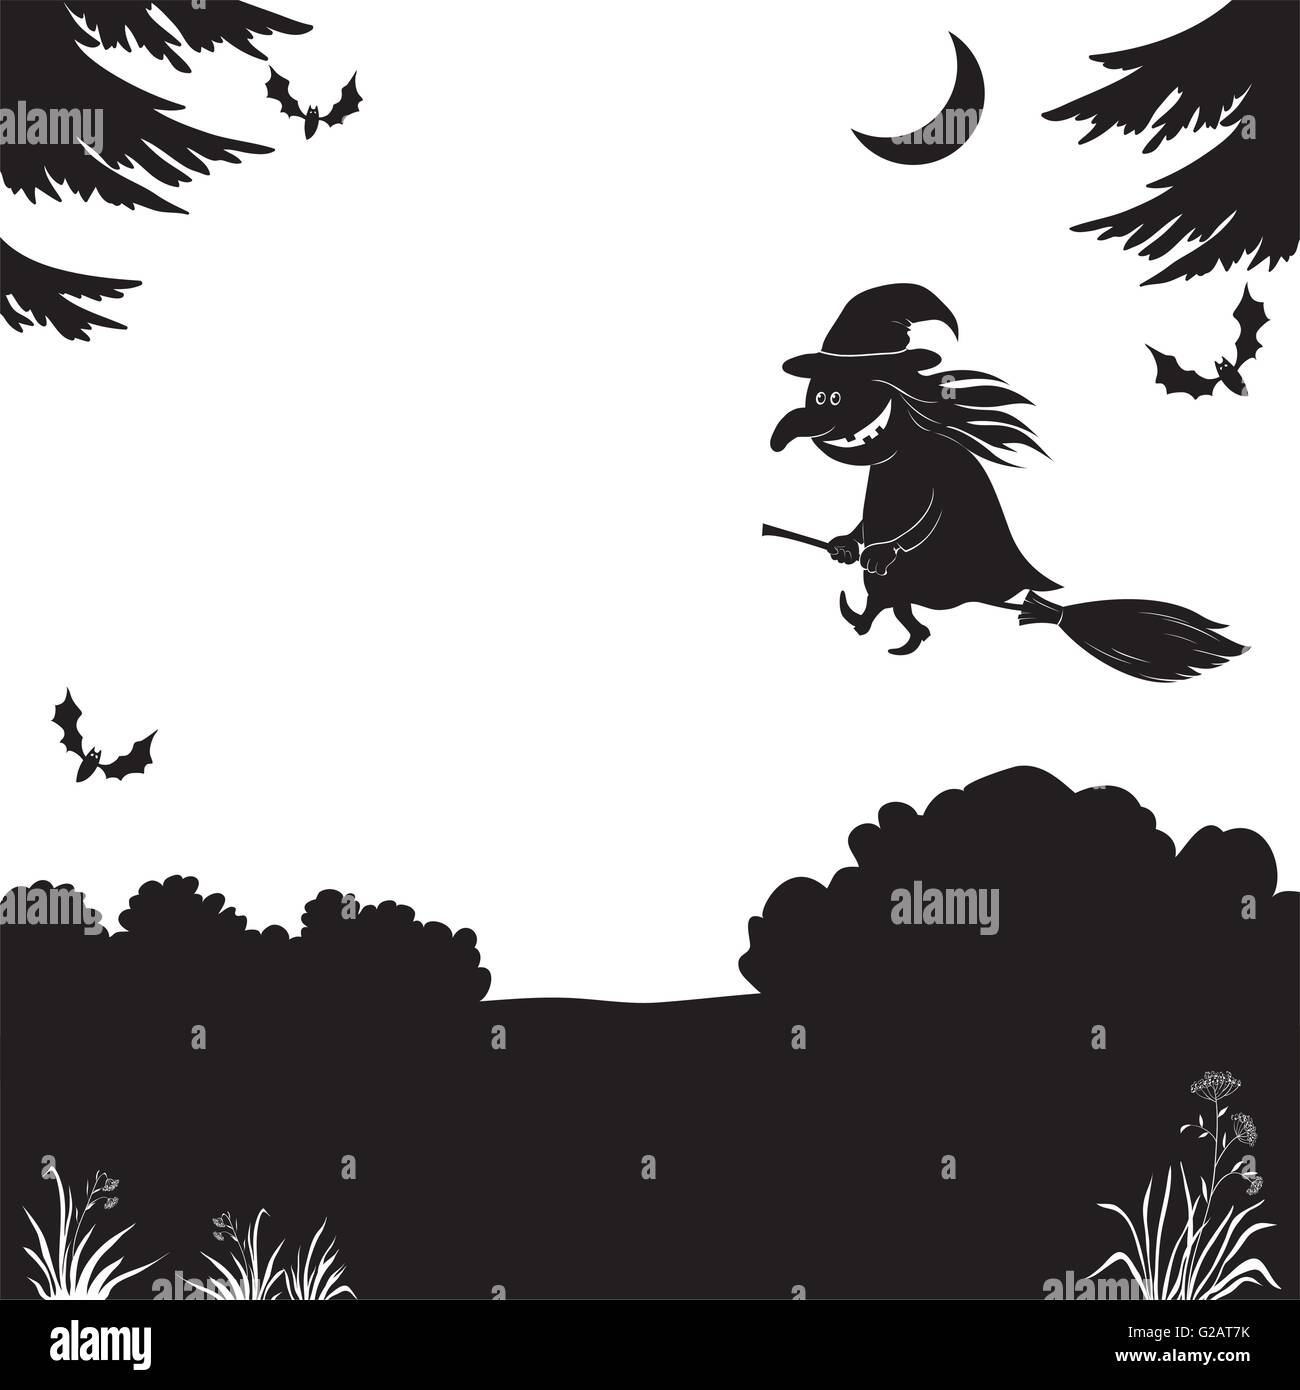 Witch Silhouette Stock Photos  U0026 Witch Silhouette Stock